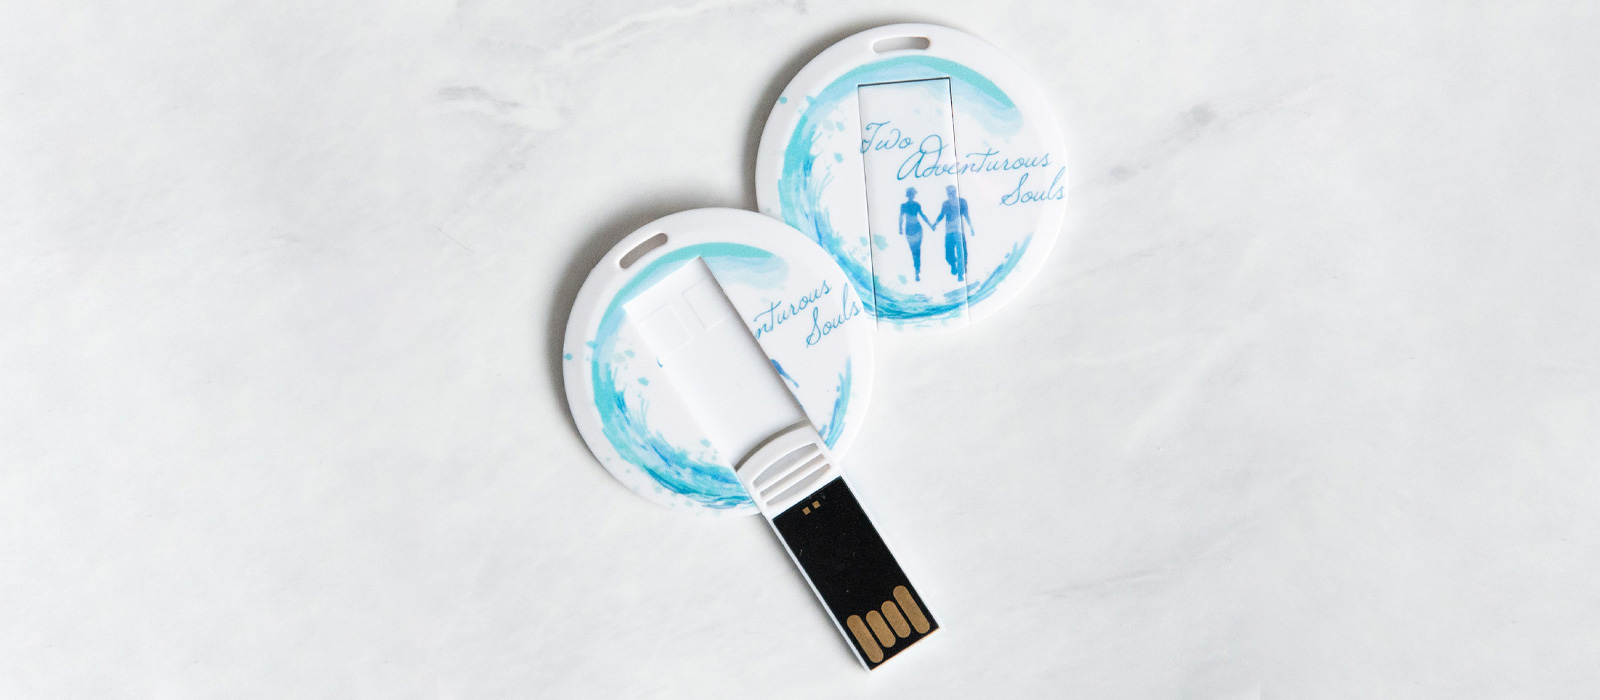 Two Adventurous Souls Round Card-flip Flash Drives 2